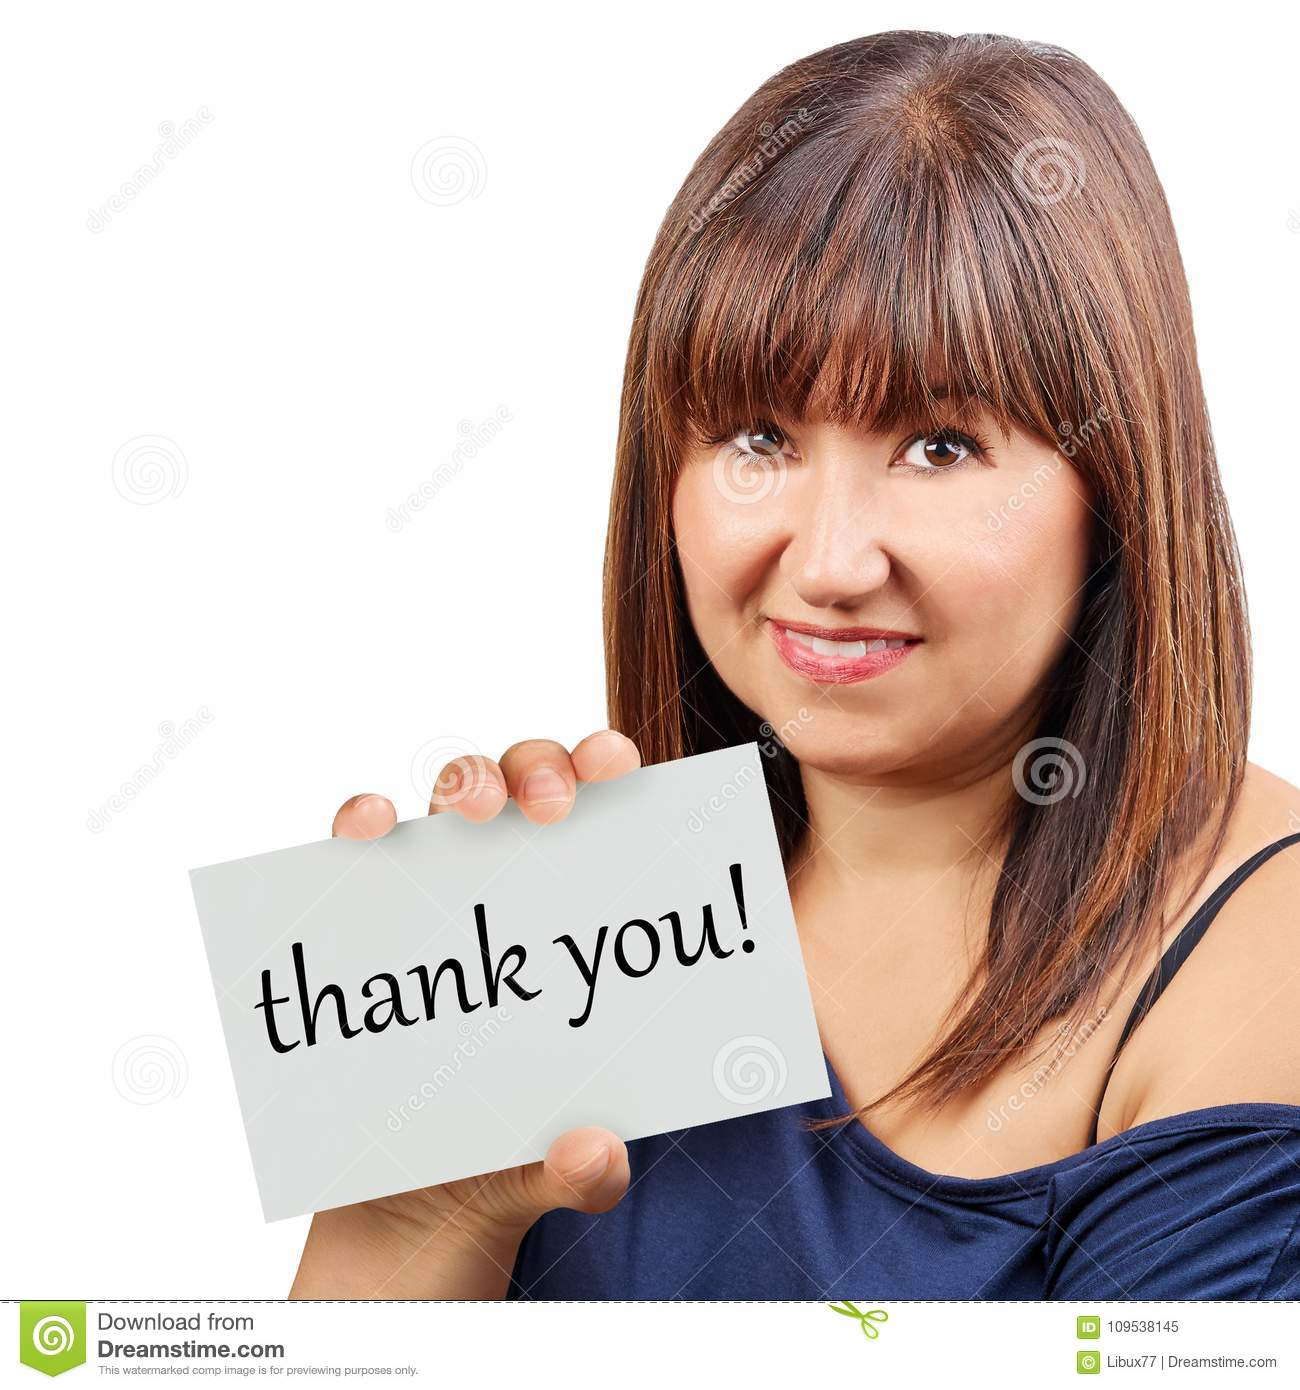 Thank you card held by brunette woman isolated